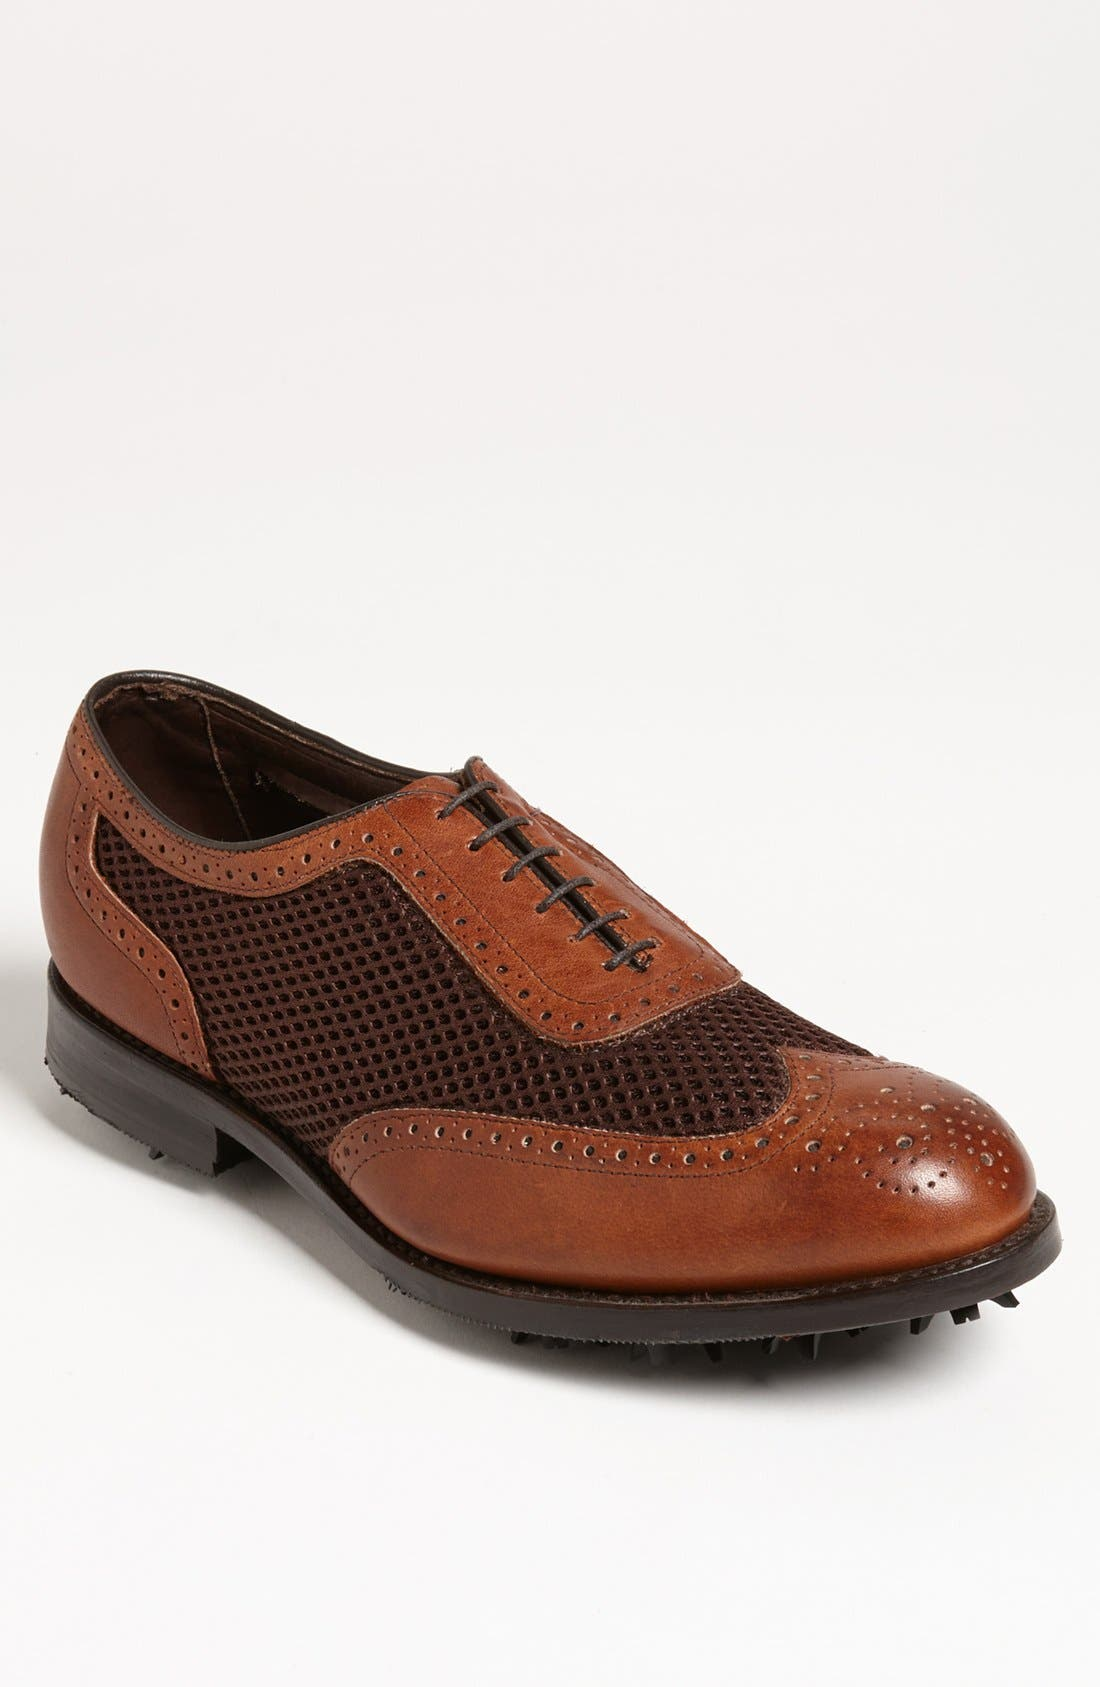 Main Image - Allen Edmonds 'Double Eagle' Golf Shoe (Men)